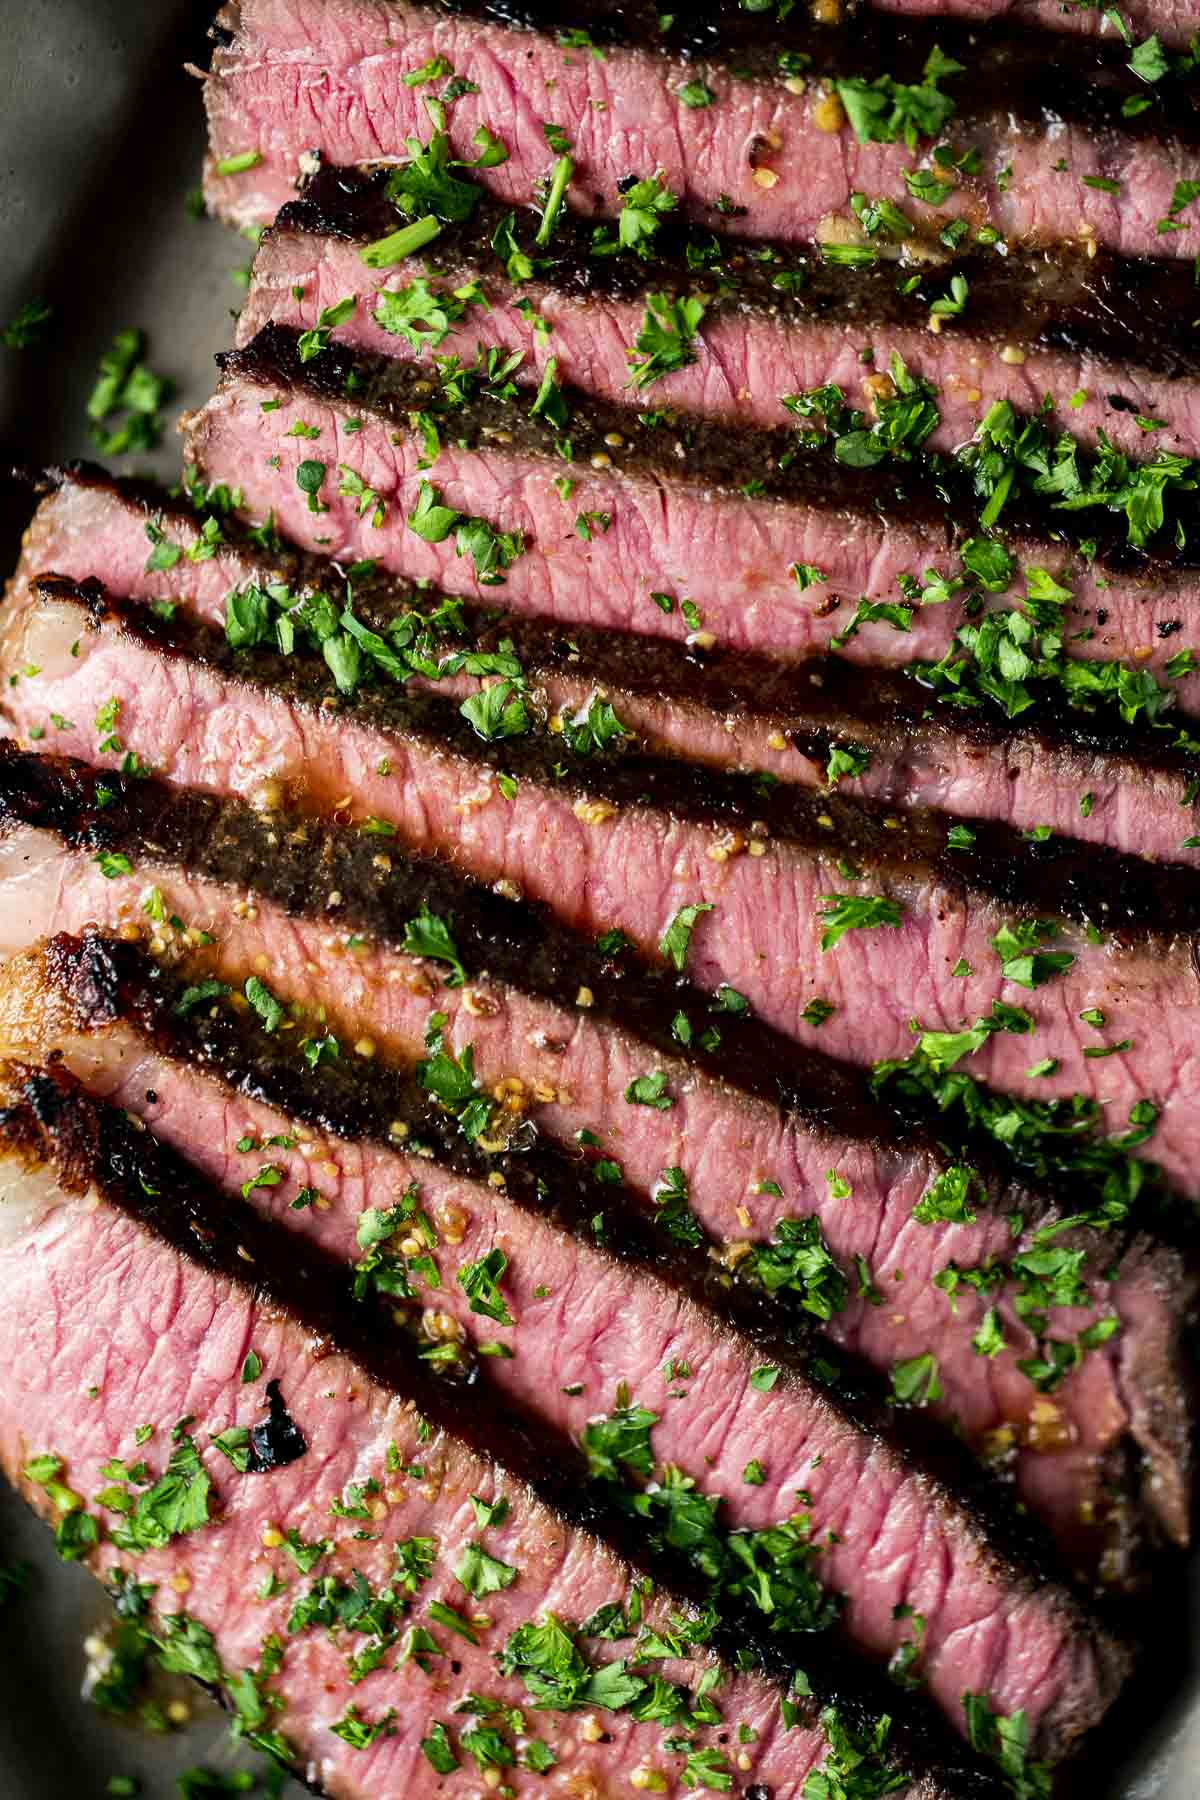 Up close of a London broil cooked to medium rare and sliced.